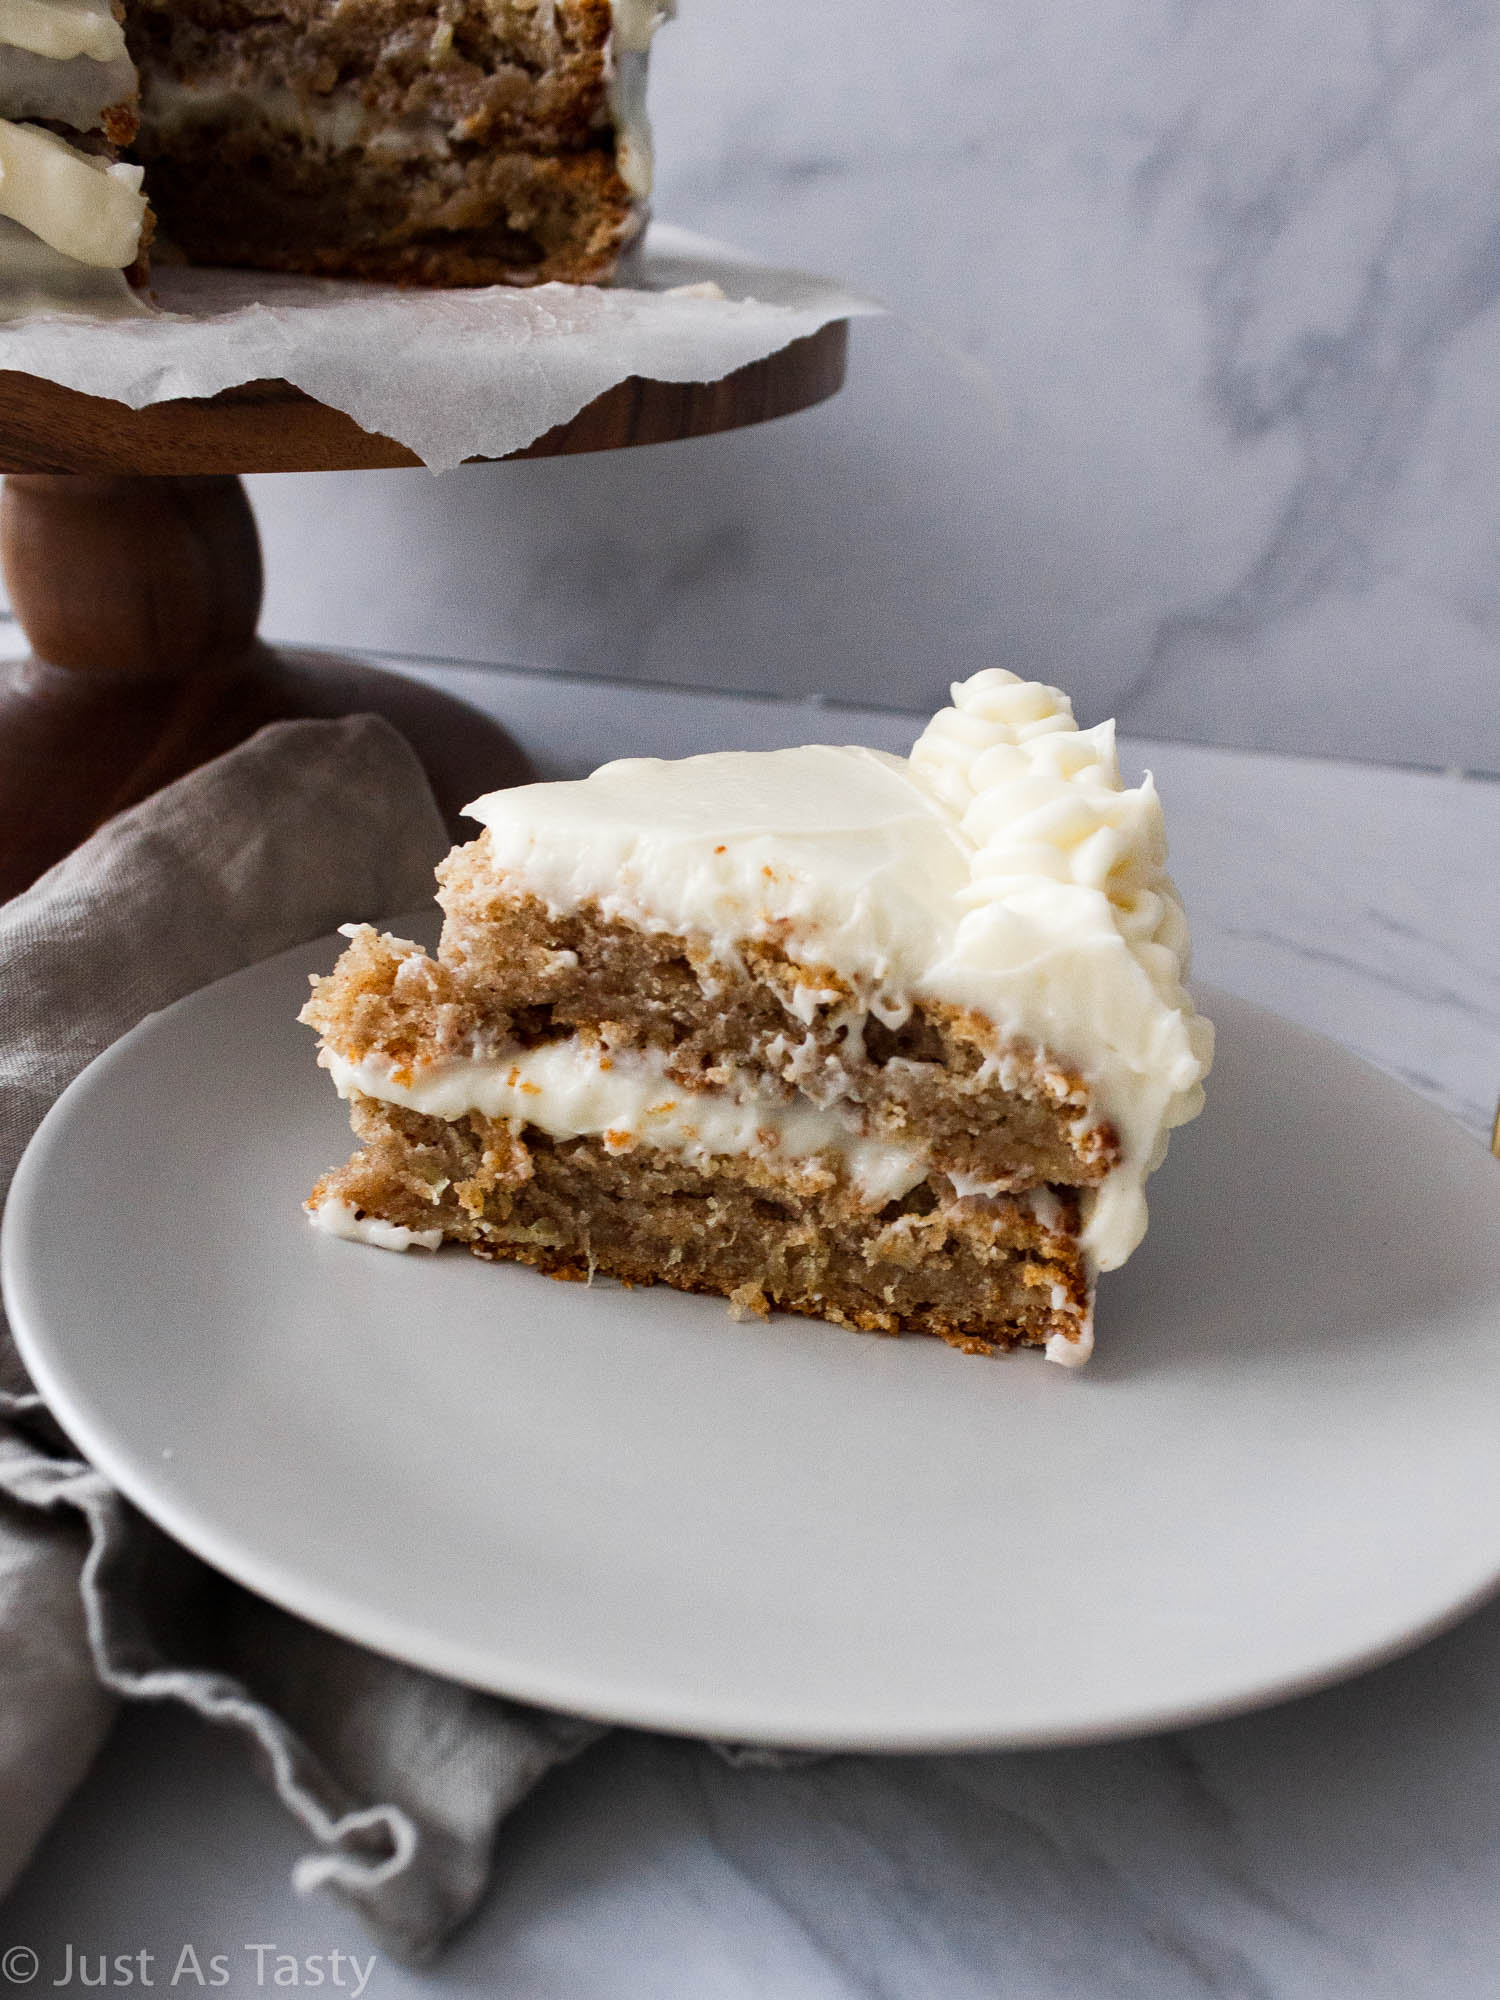 Slice of two layer frosted hummingbird cake on a plate.